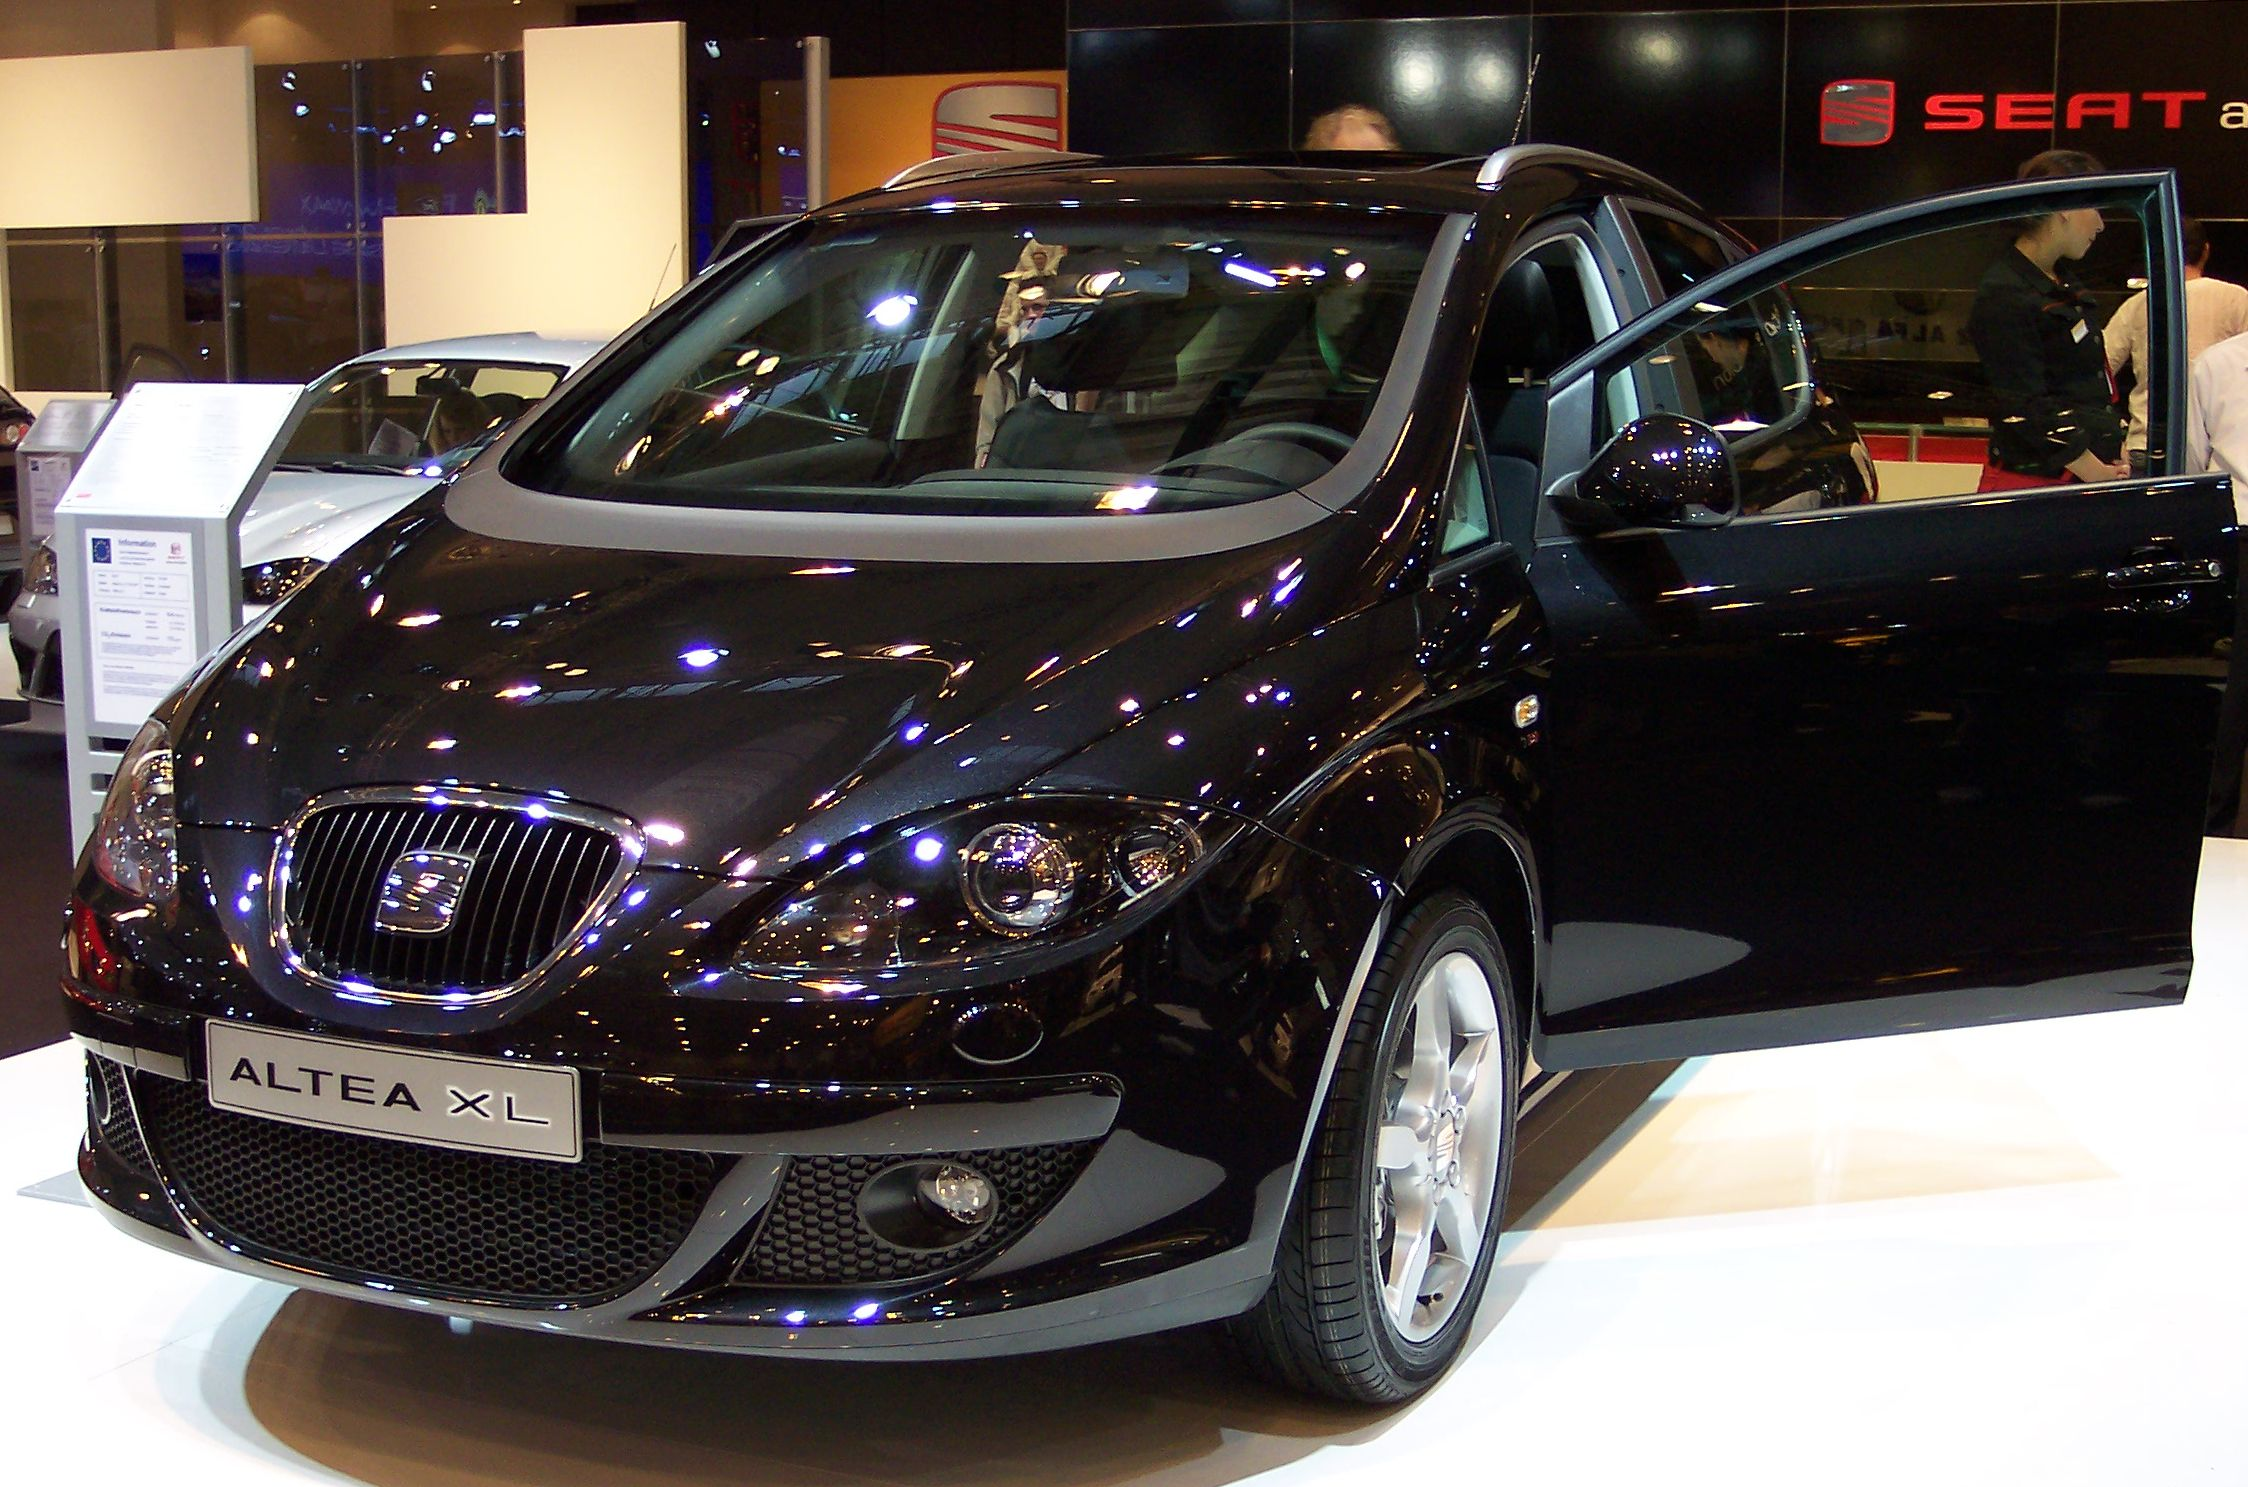 SEAT Altea XL: 11 фото